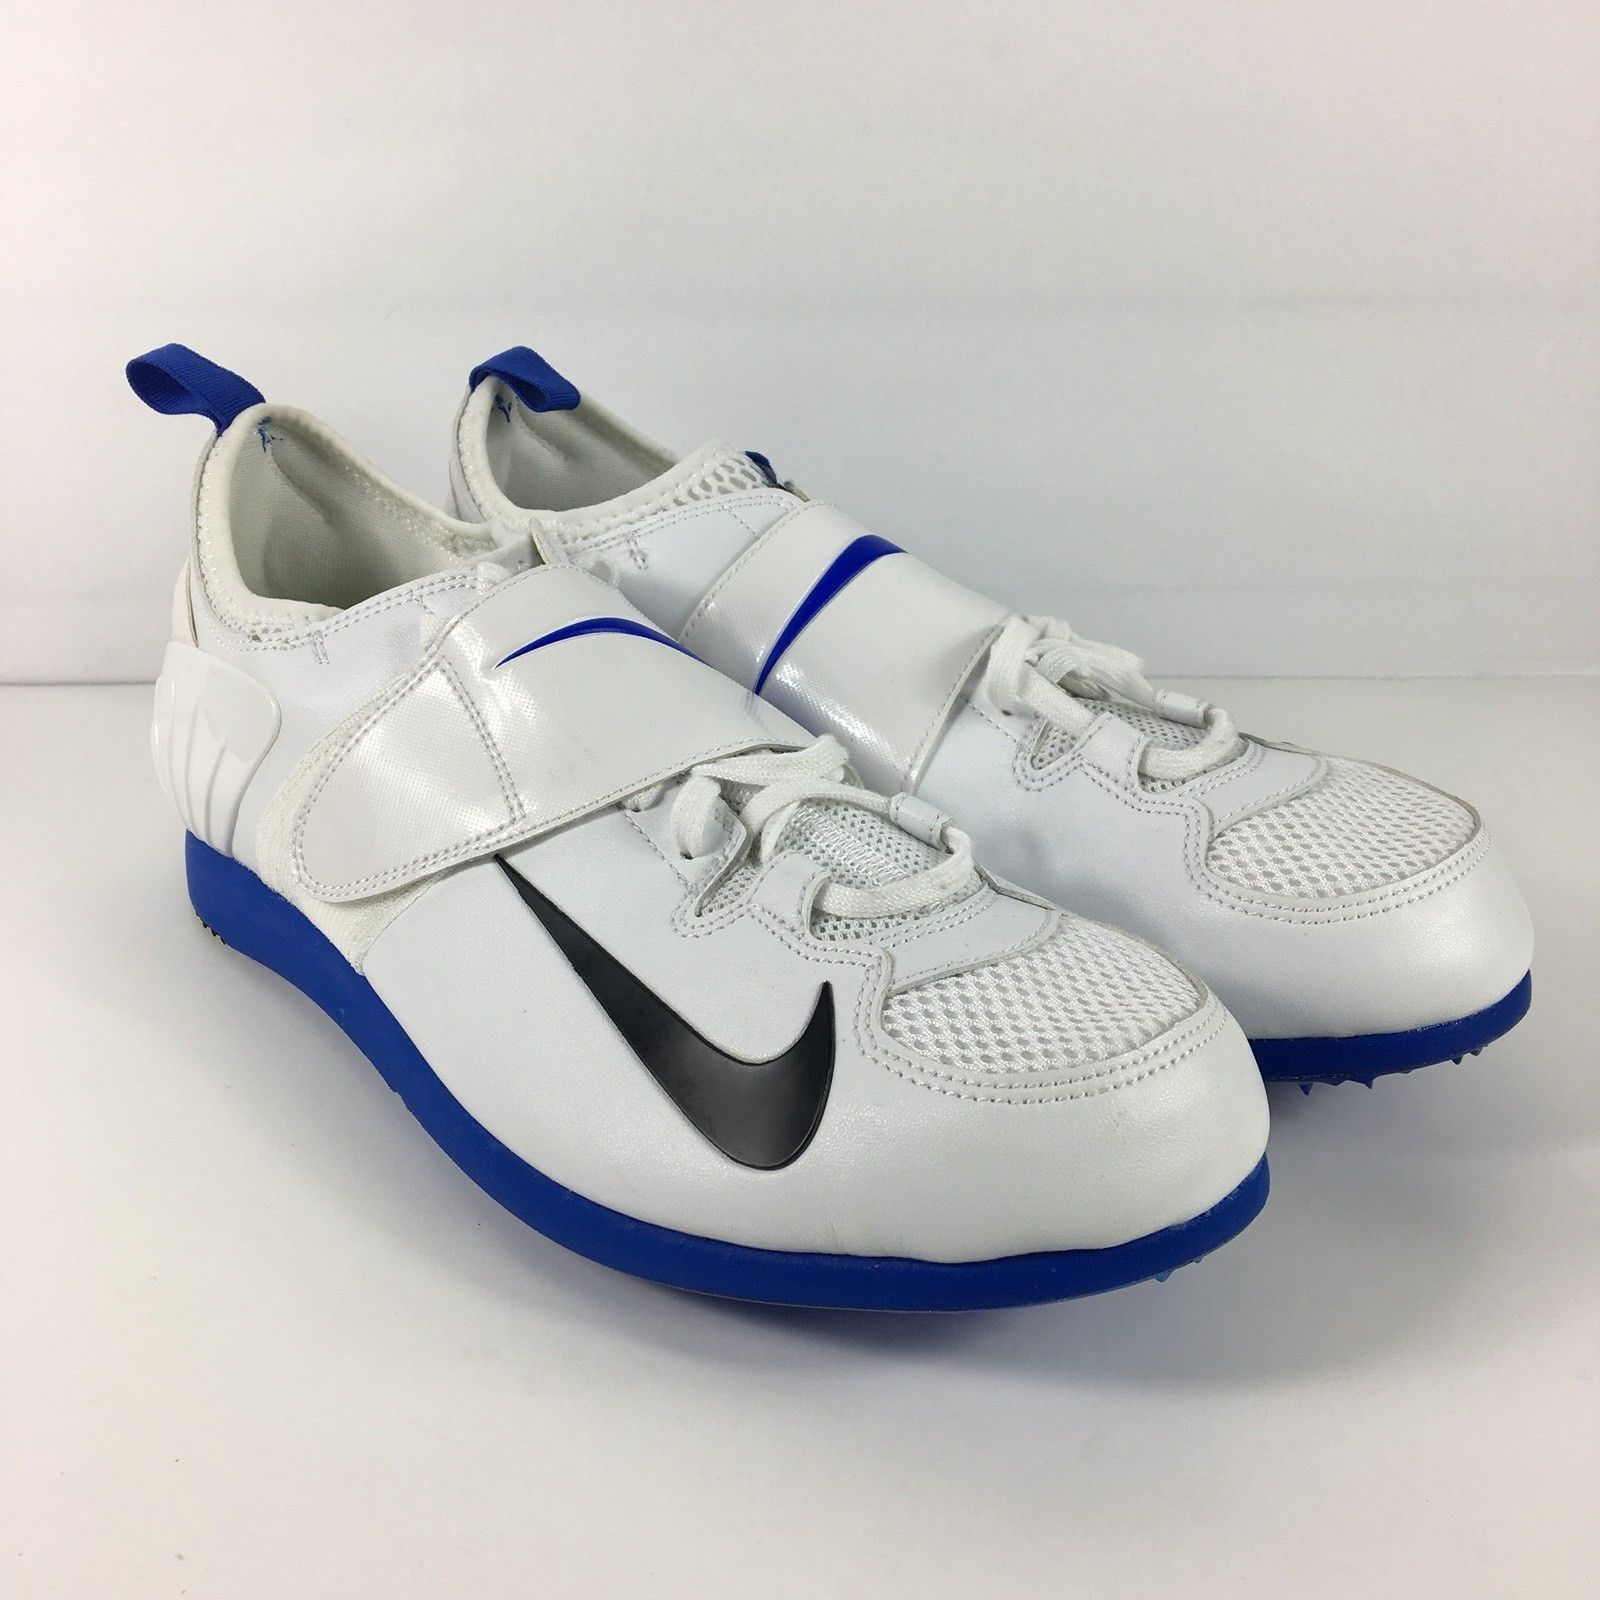 24c91aa5f9cb1 New Nike Zoom PV II Pole Vault Spikes Track and 17 similar items. S l1600